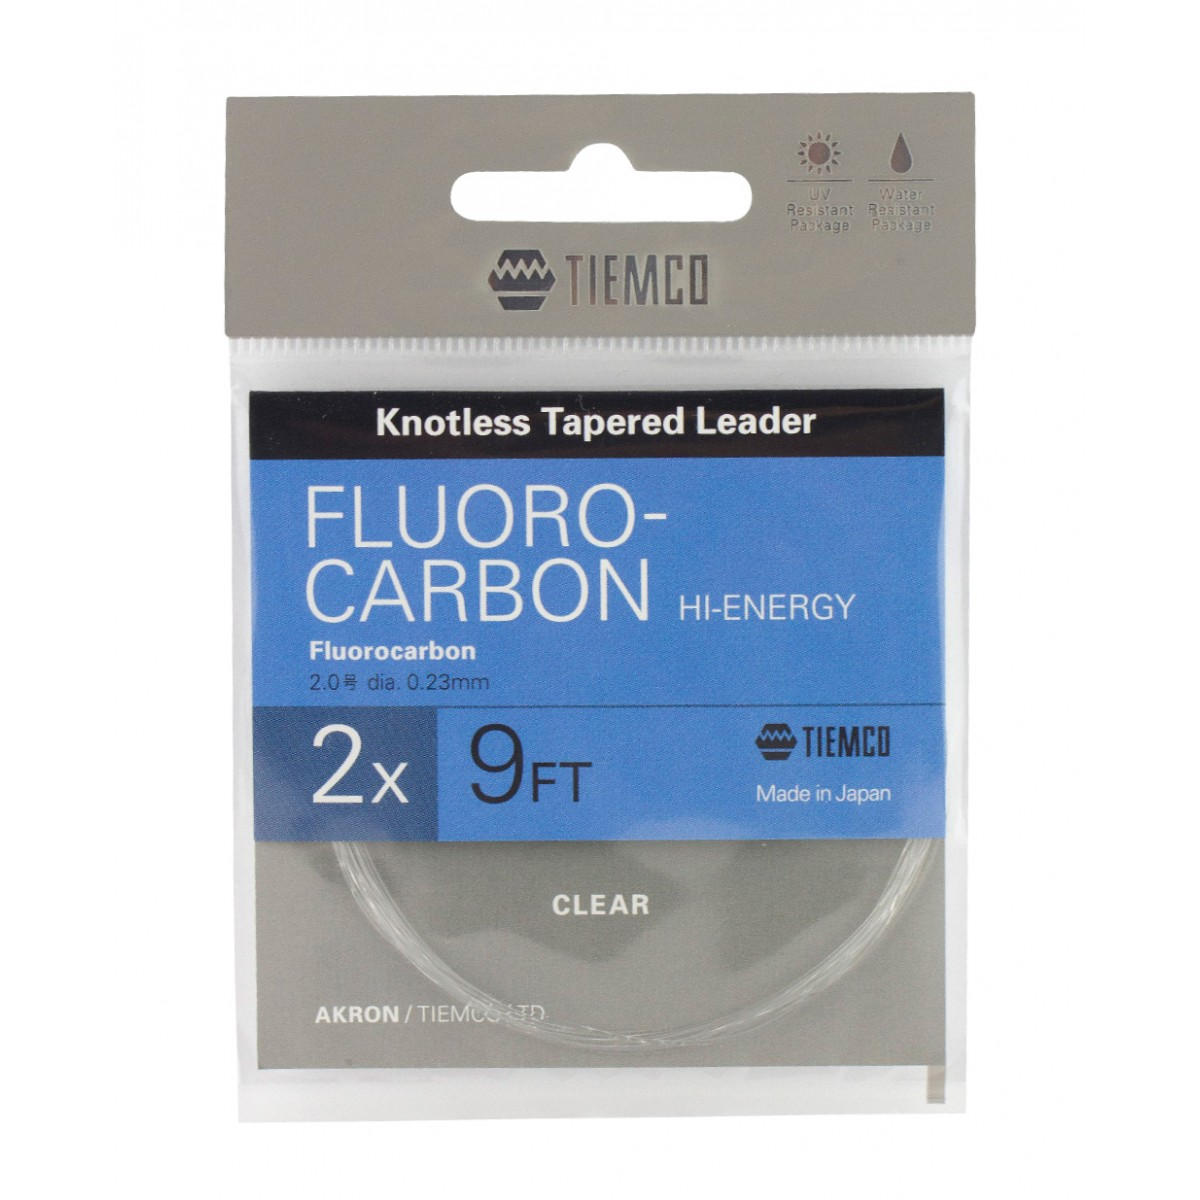 Flourocarbon Knoxless Tapered Leaders 9 ft 1x